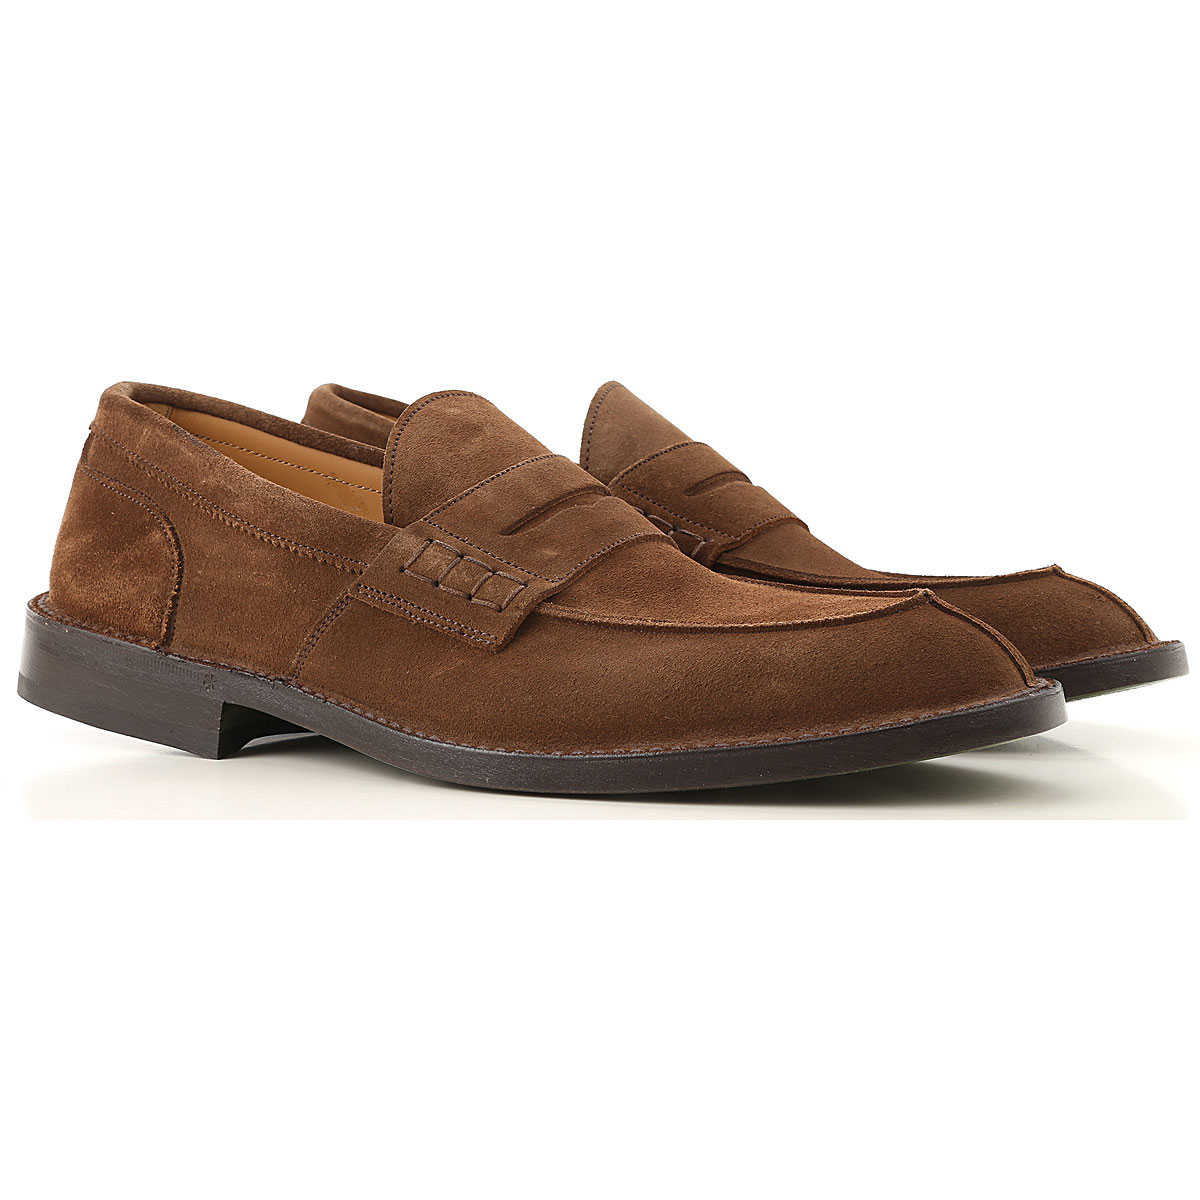 Green George Loafers for Men On Sale Mole SE - GOOFASH